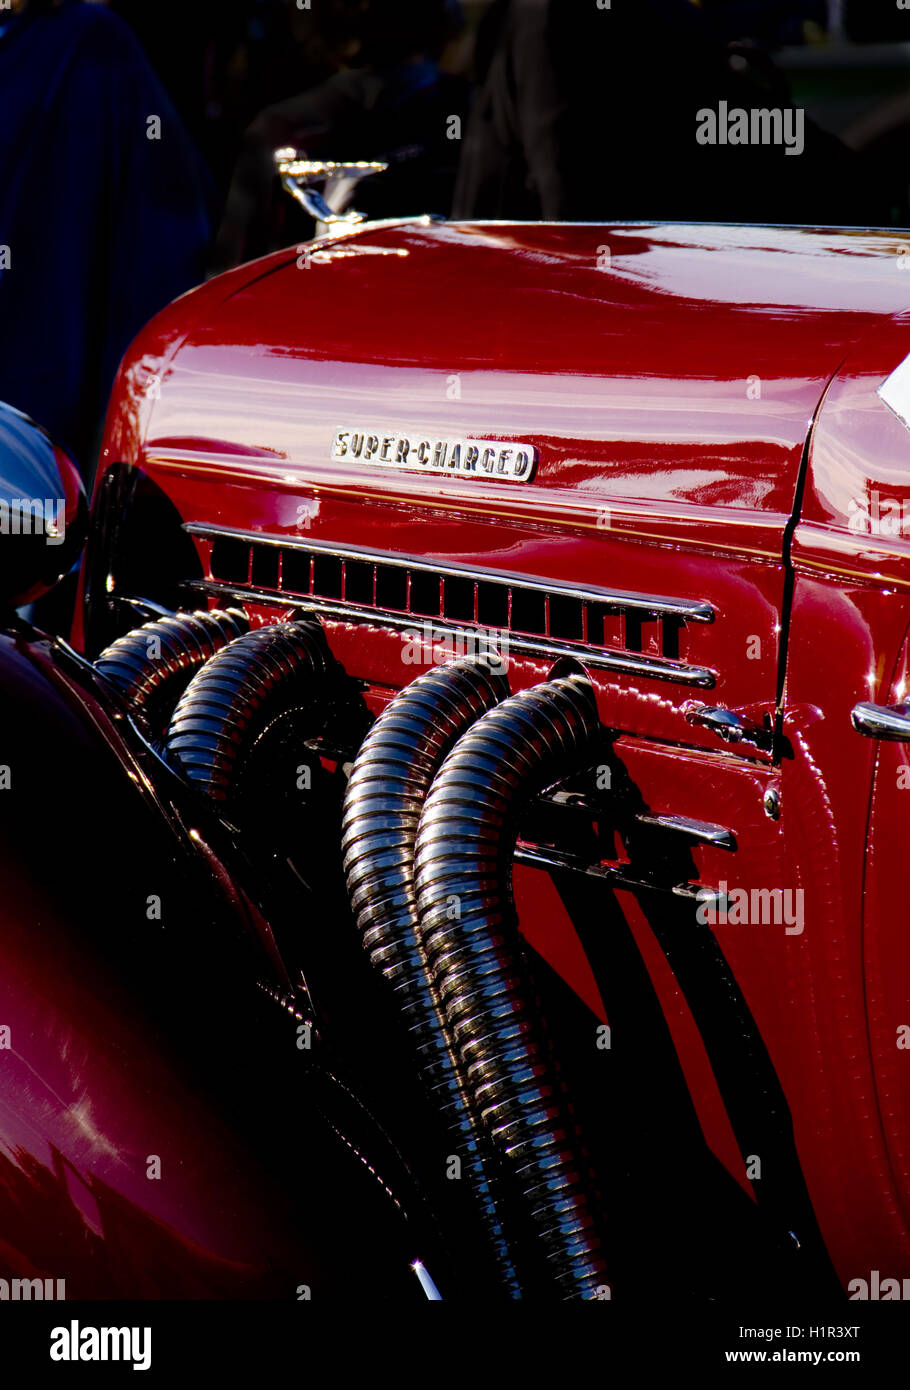 External exhaust pipes of a 1935 Auburn 851 Speedster - Stock Image